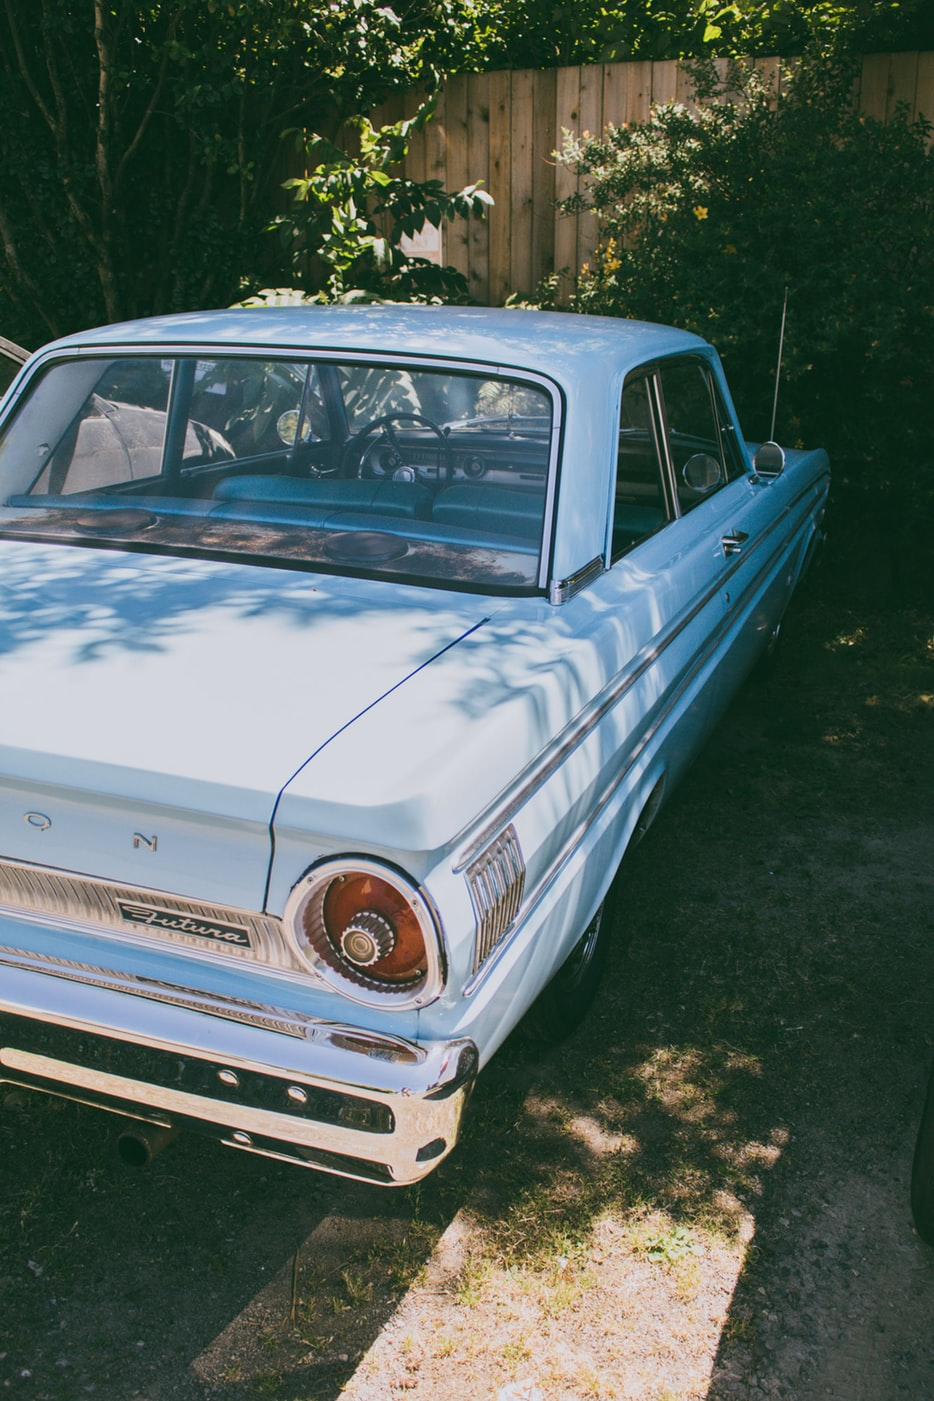 An old blue car parked on a driveway.